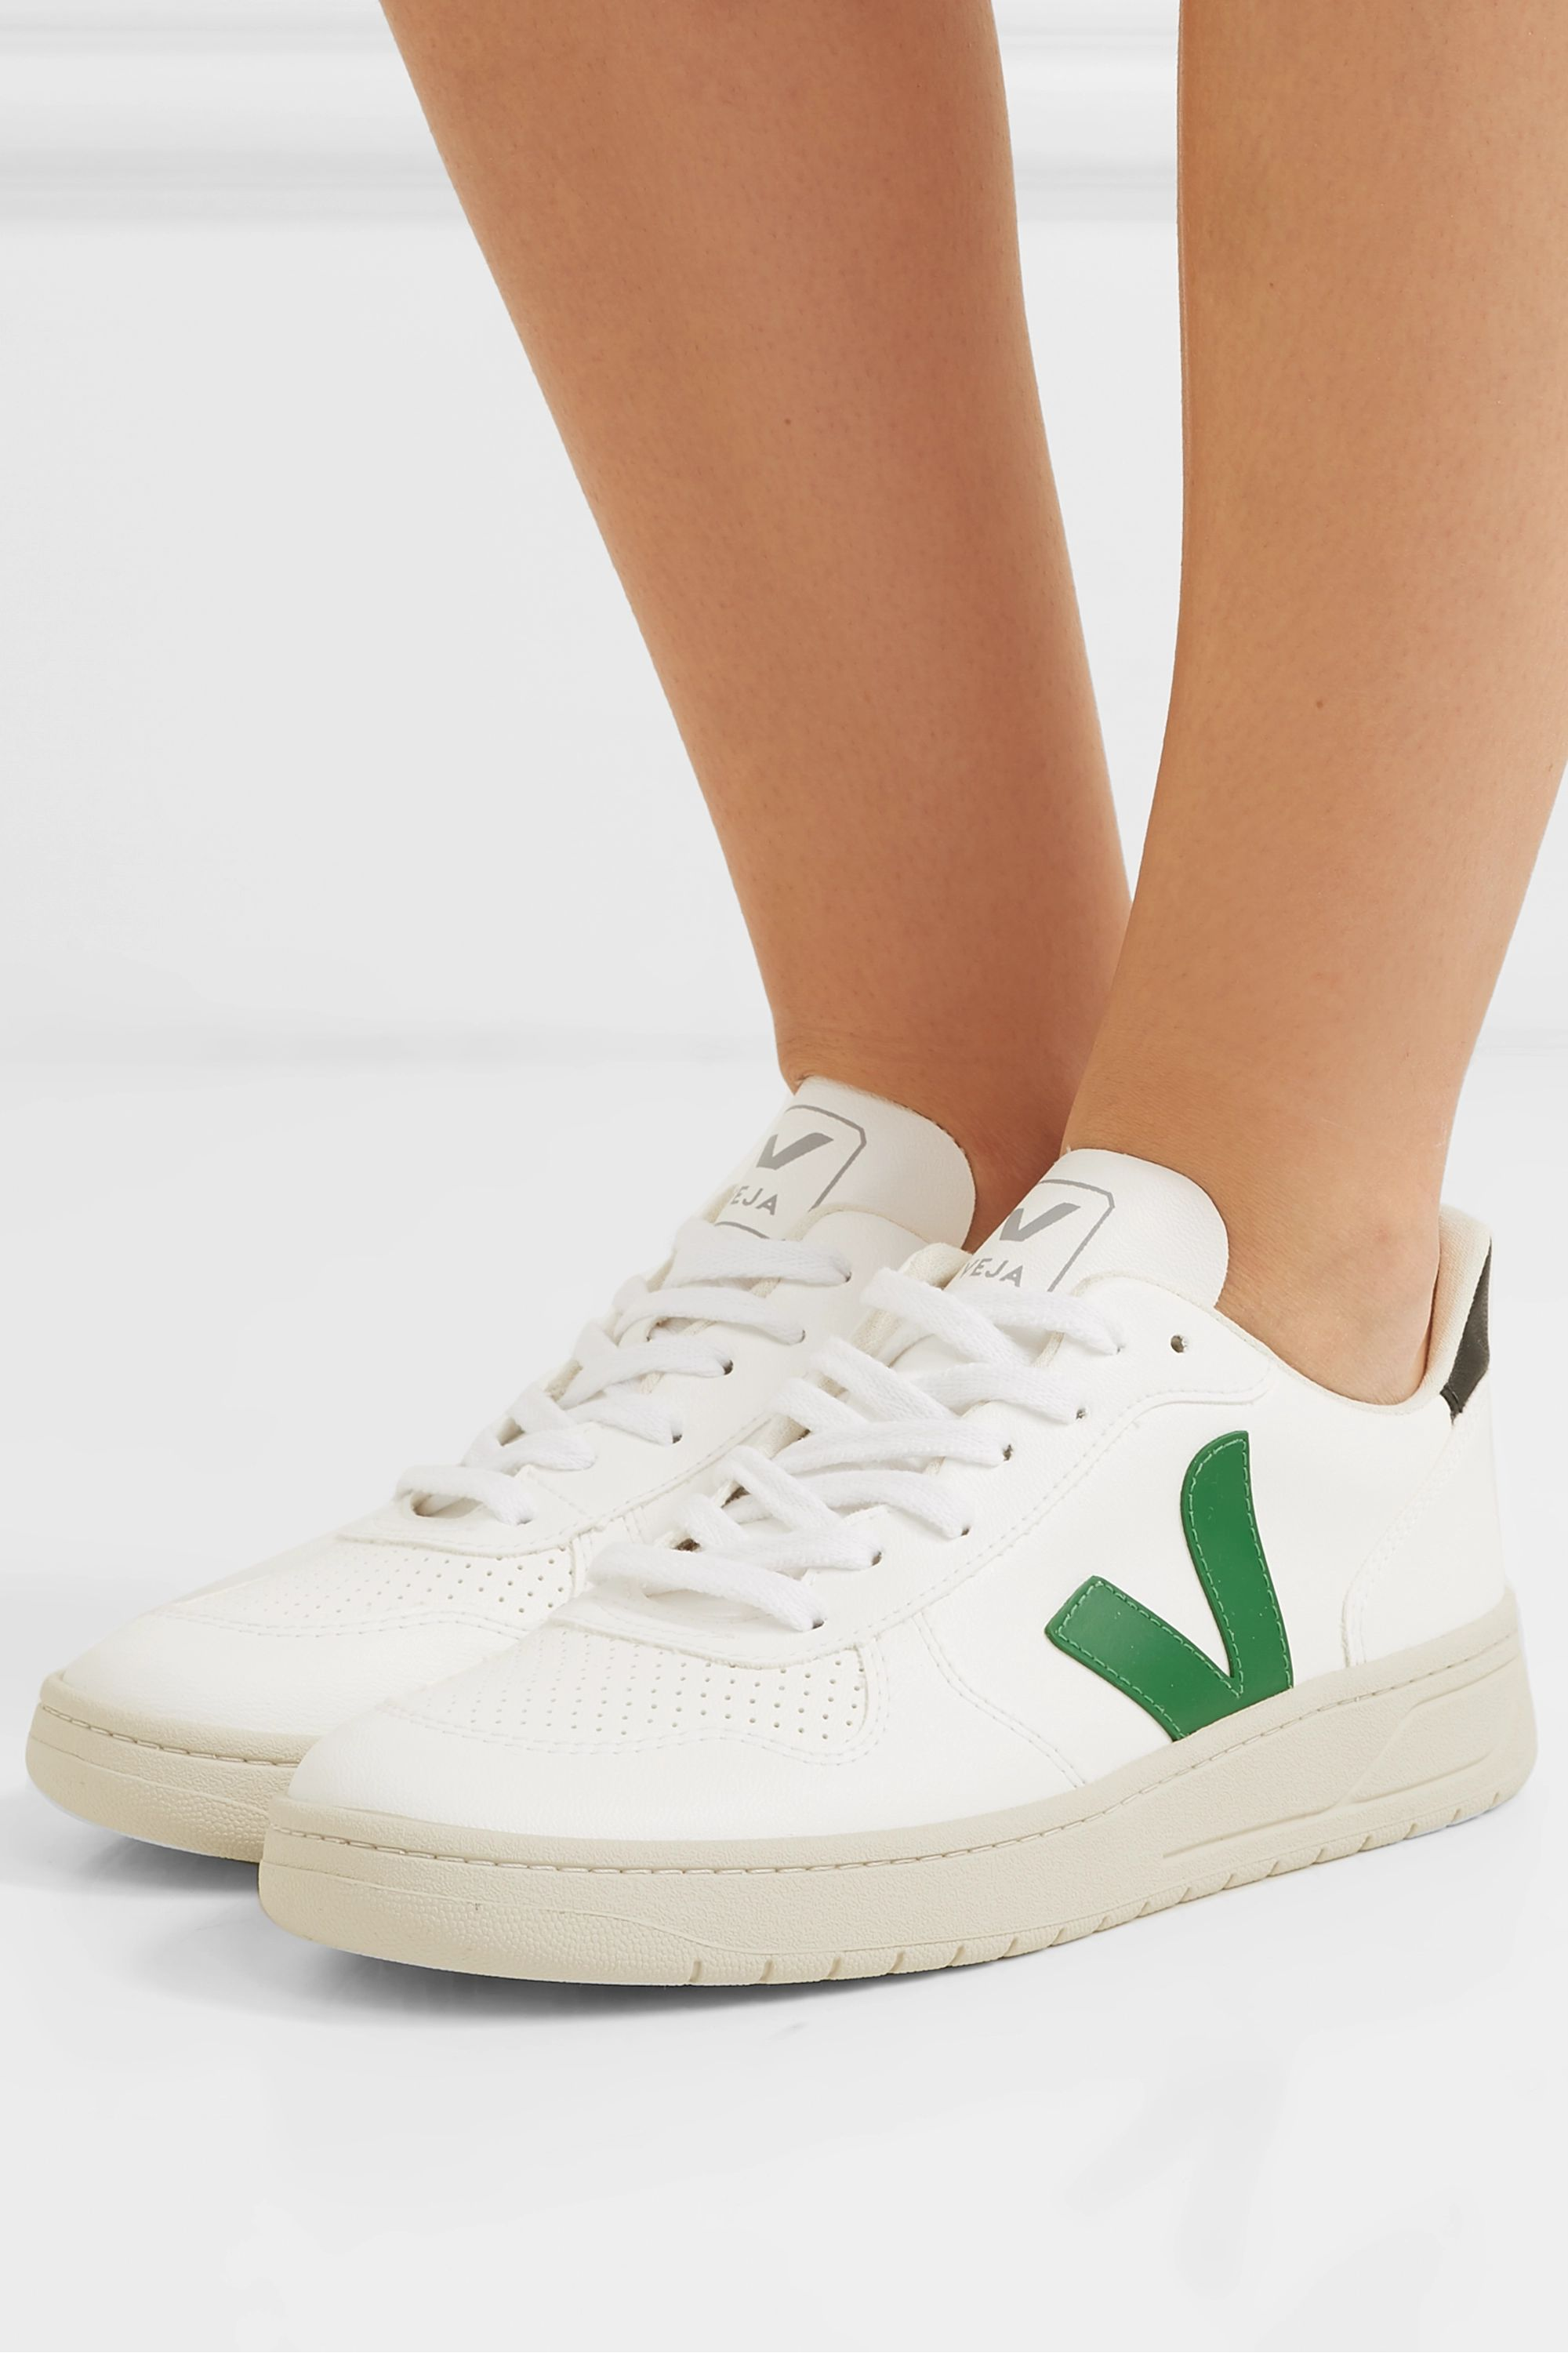 caliente estar impresionado Fantástico  White + NET SUSTAIN V-10 Bastille vegan leather sneakers | Veja |  NET-A-PORTER